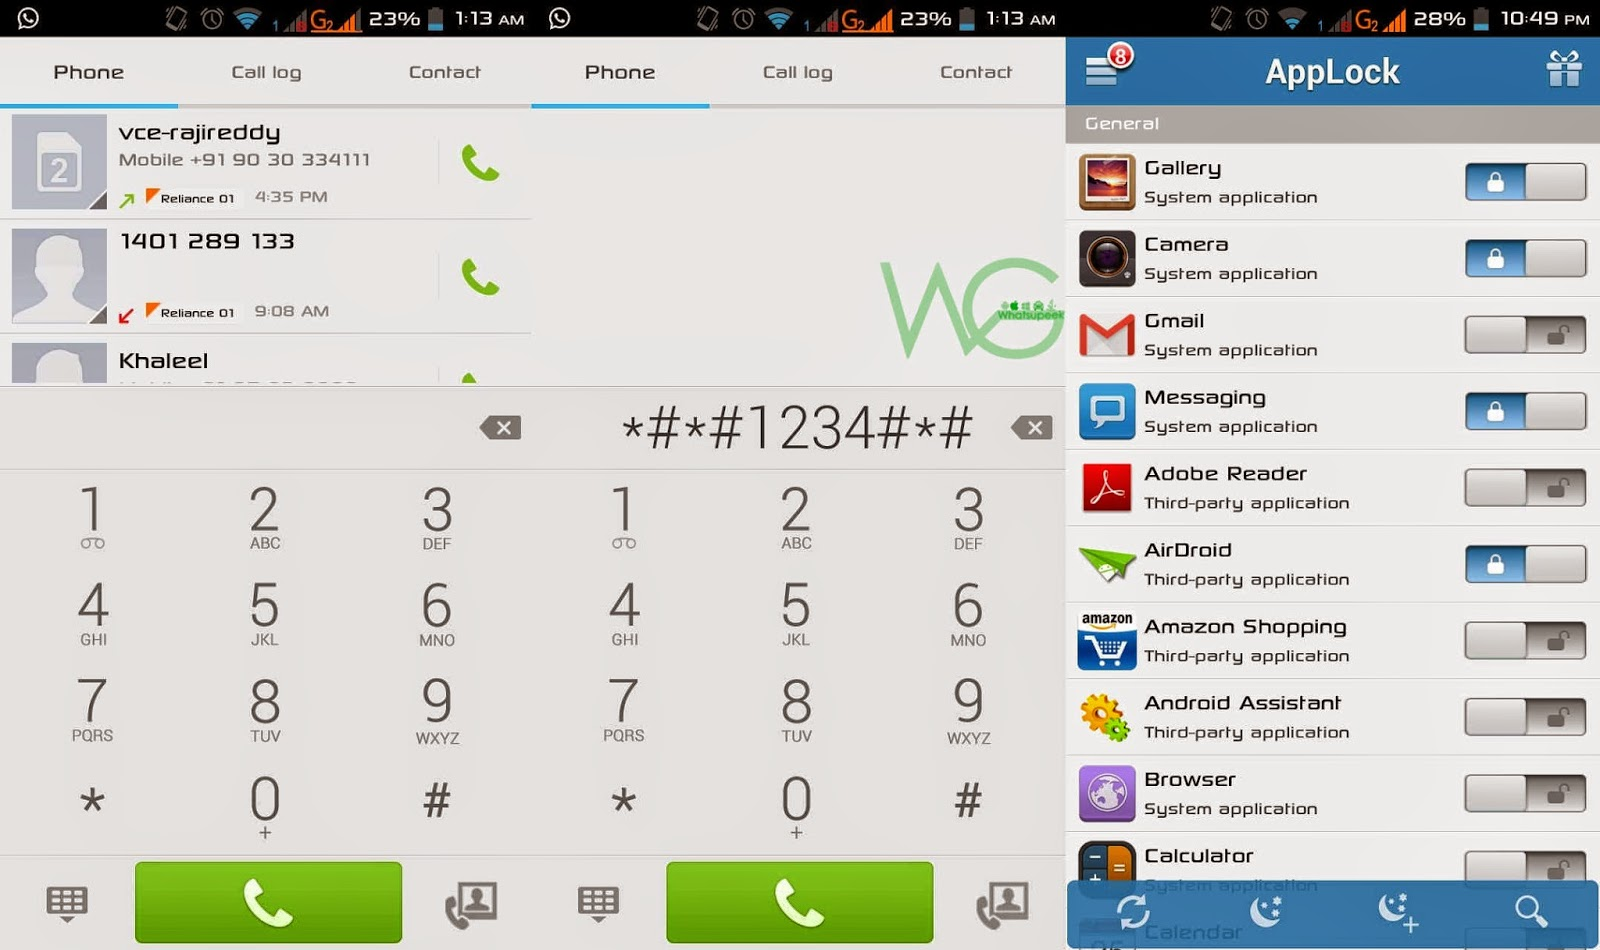 Android tips and tricks to Hide or unhide Applock ~ WHATSUPGEEK